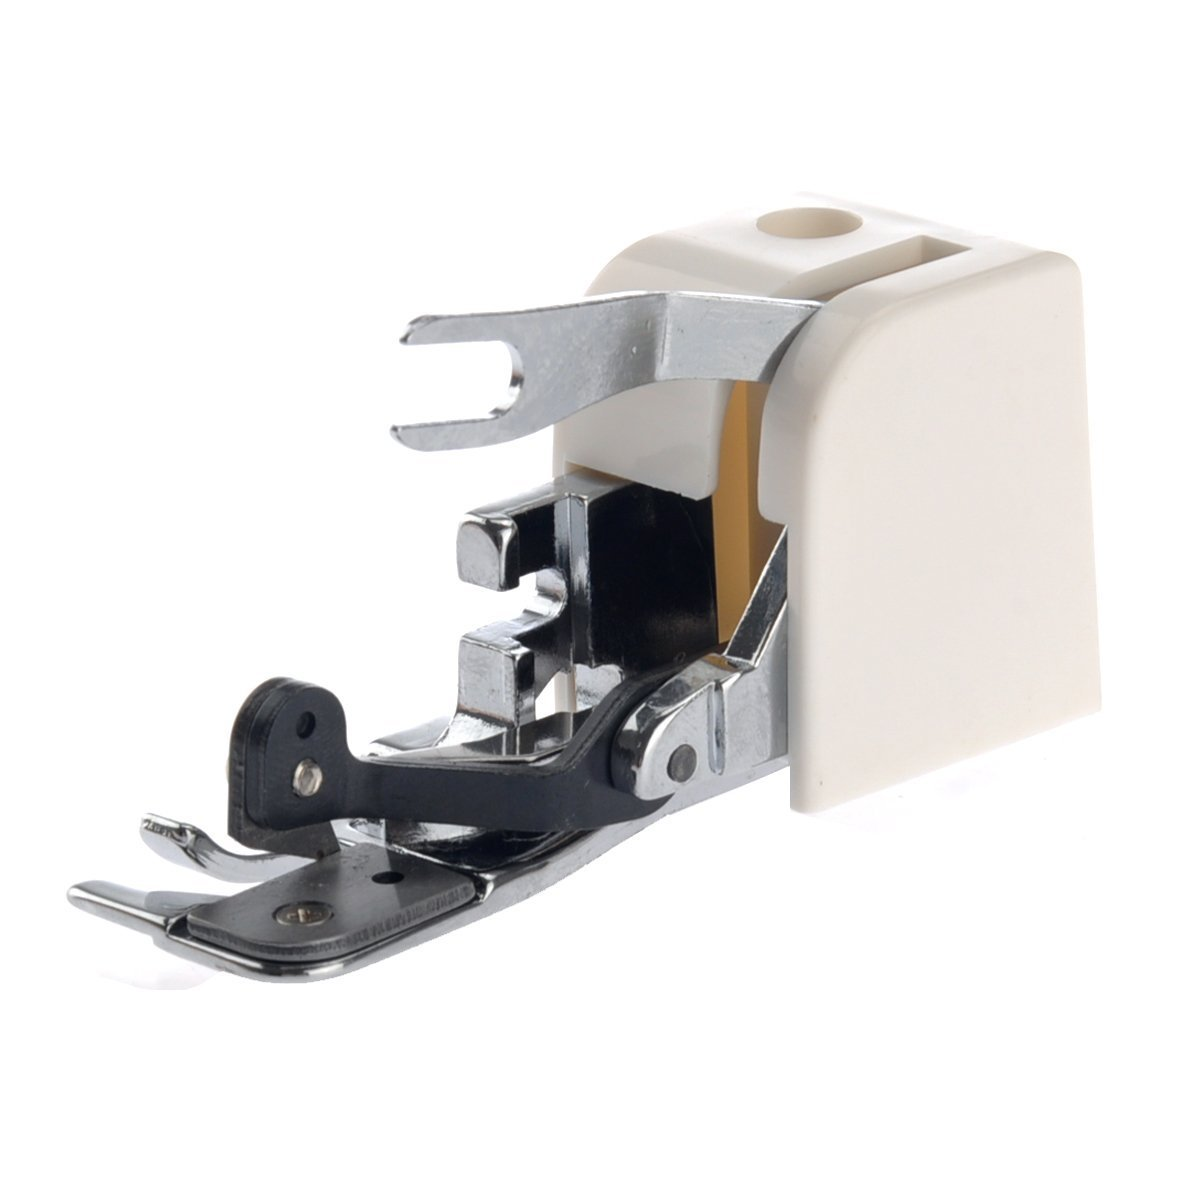 Labellevie Multi-functional Sewing Machine Side Cutter Presser Foot for Brother /Singer /Babylock /Janome /Kenmore J0106